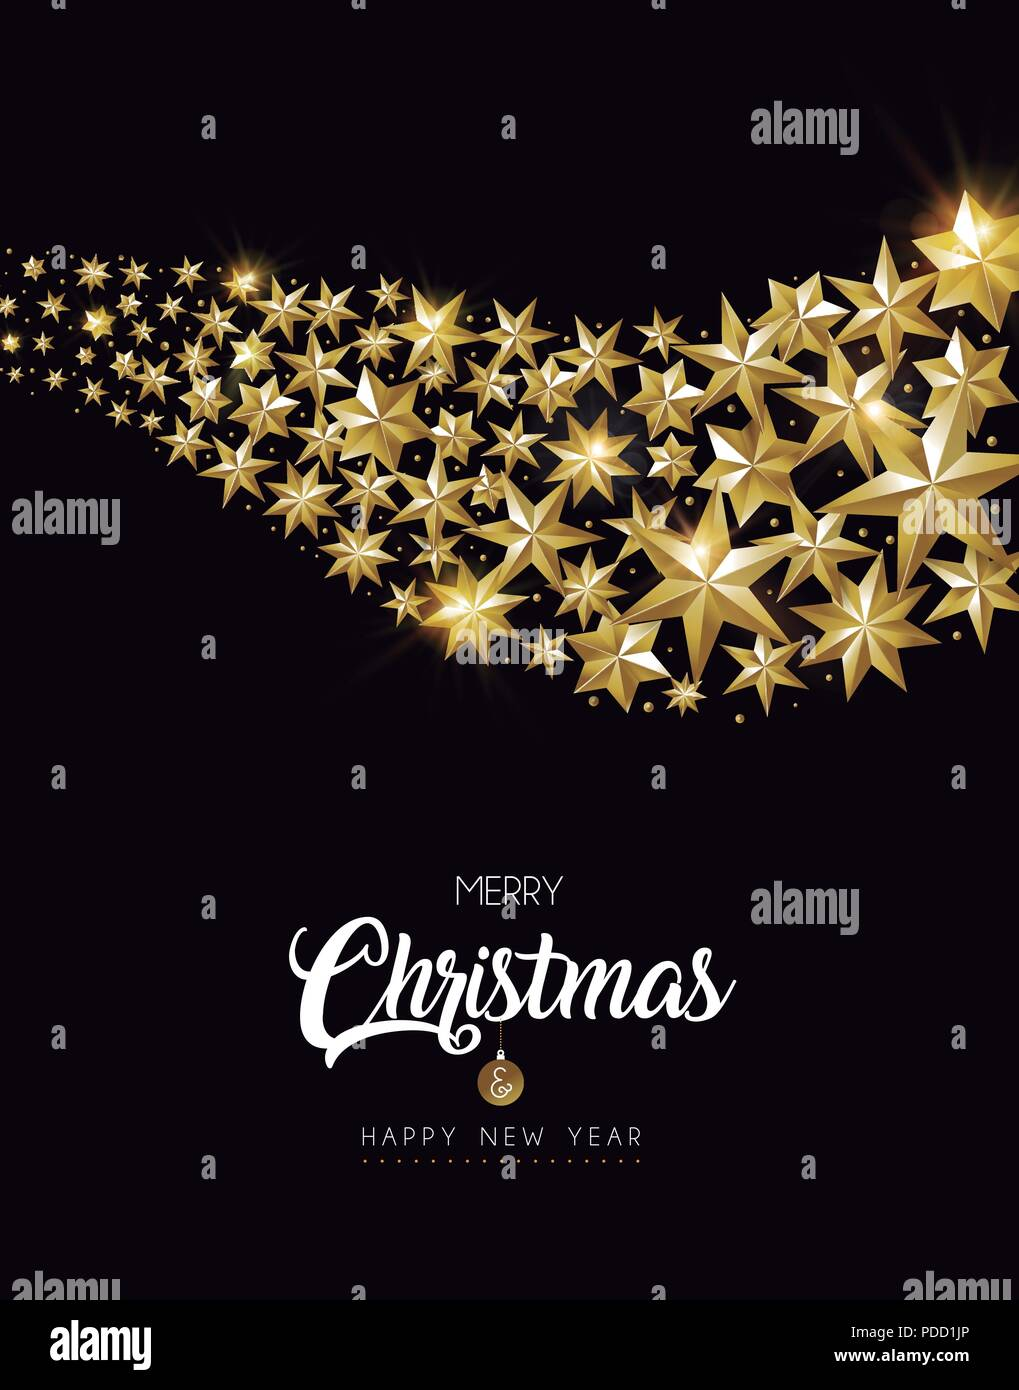 merry christmas and happy new year luxury gold star decoration design ideal for greeting card or elegant holiday party invitation eps10 vector